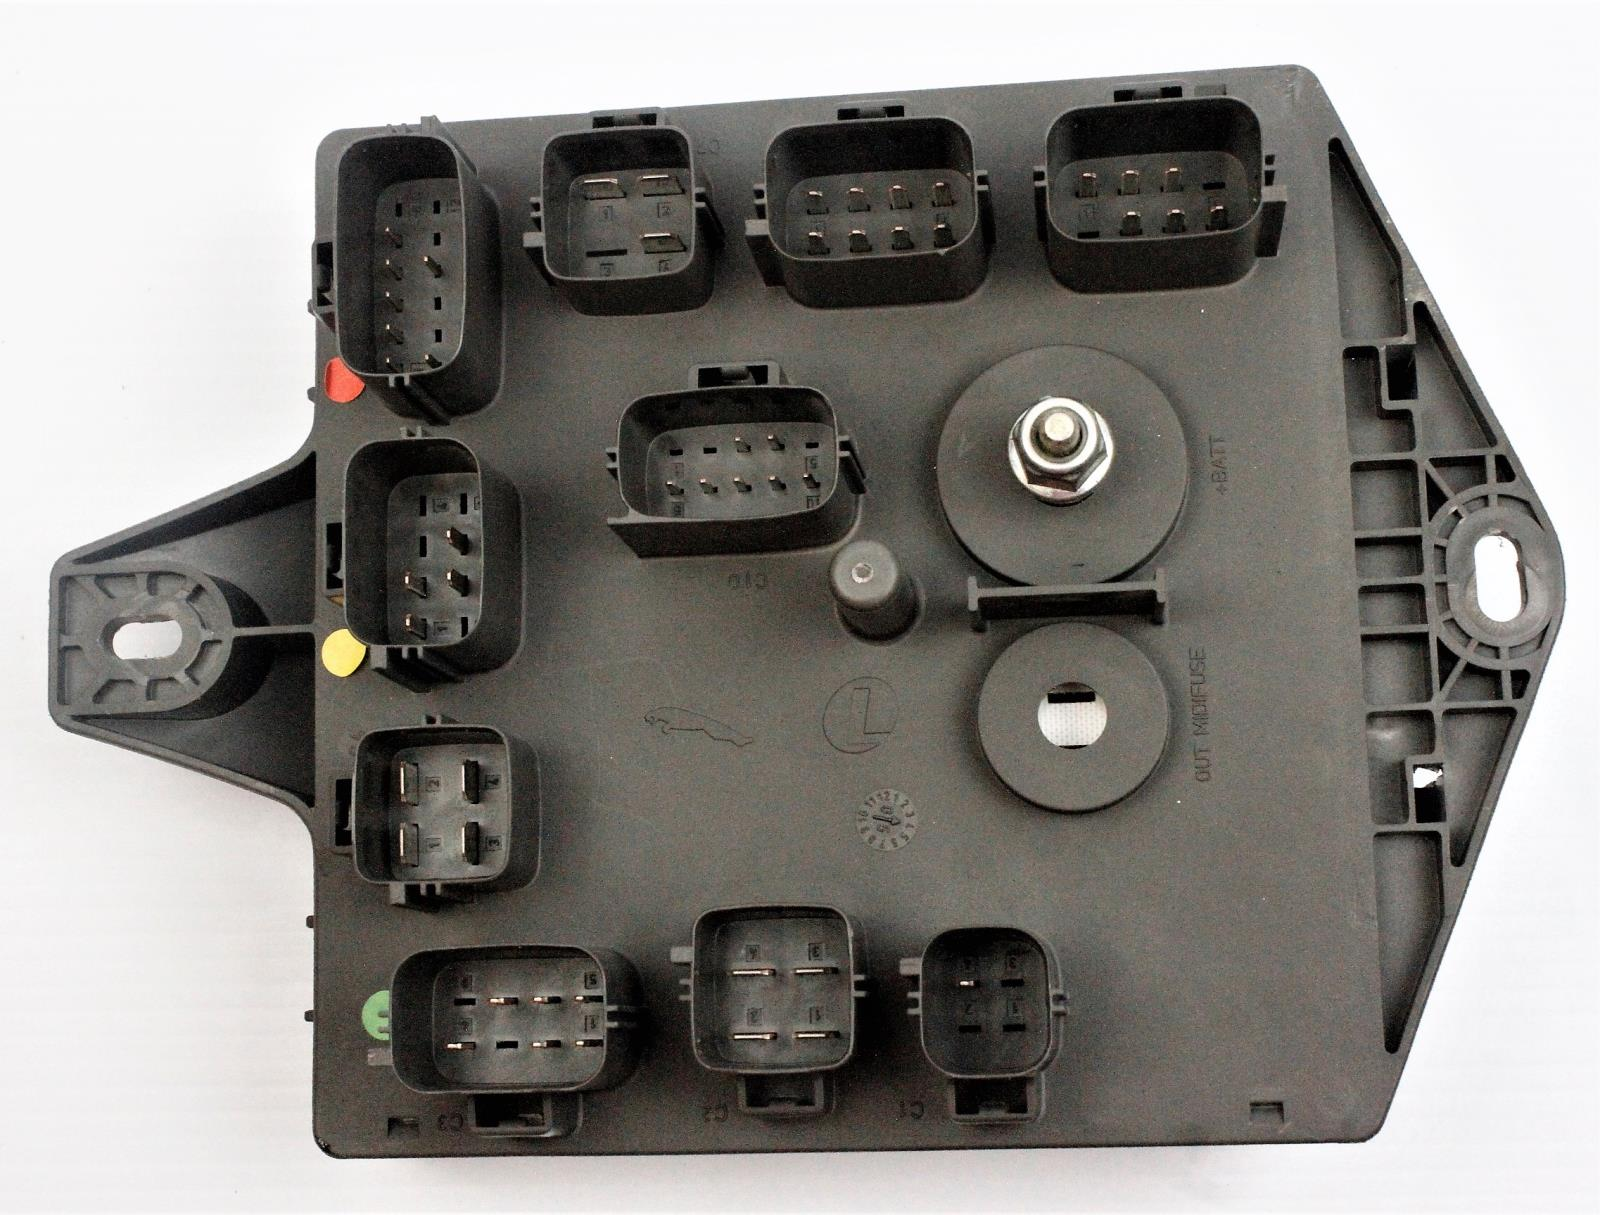 2003 2007 Jaguar Xj Xj8 Xjr X350 Rear Interior Fuse Box 2w93 14n023 2005 The Is Used But In Good Working Condition And Was Tested Prior To Removal Please Verify That This Part Will Fit Your